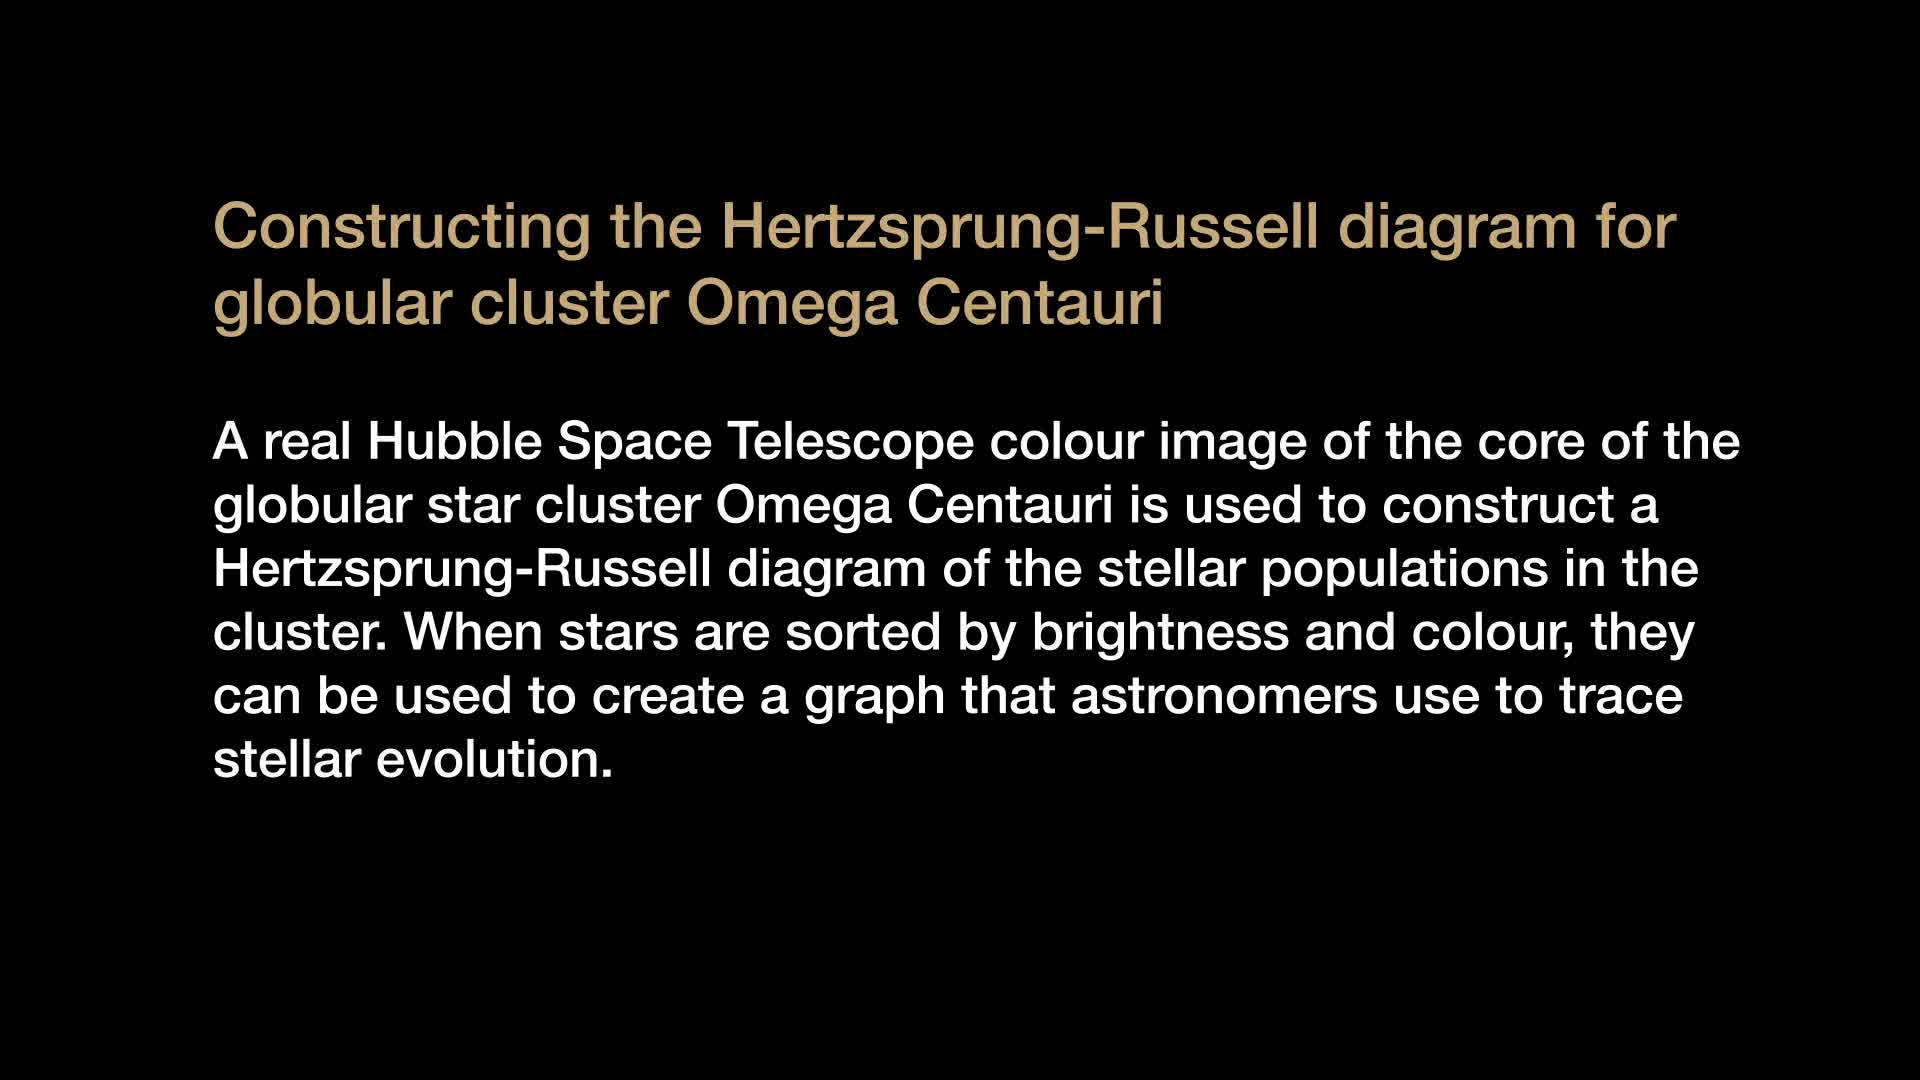 Hertzsprung russell diagram animation video watch at videotime video thumbnail pooptronica